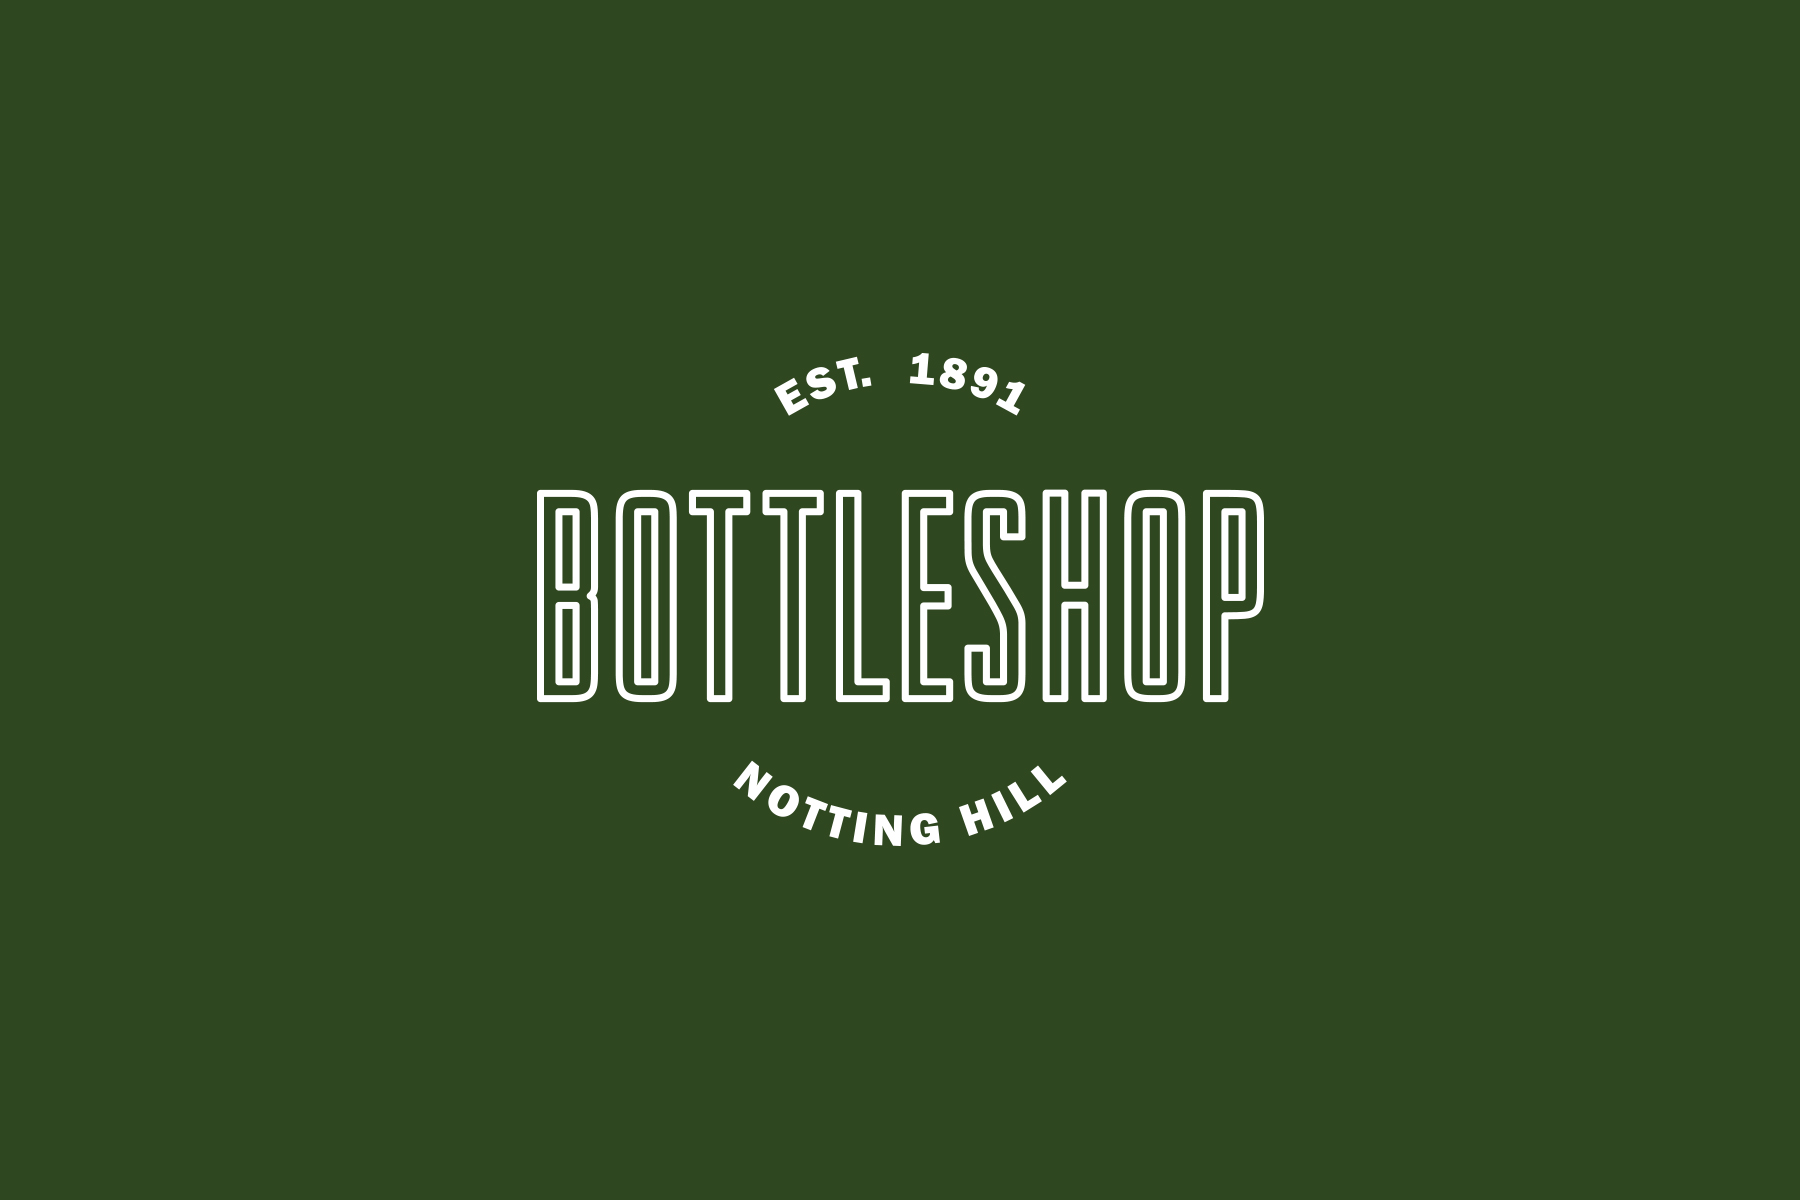 Notting Hill Hotel The Bottleshop